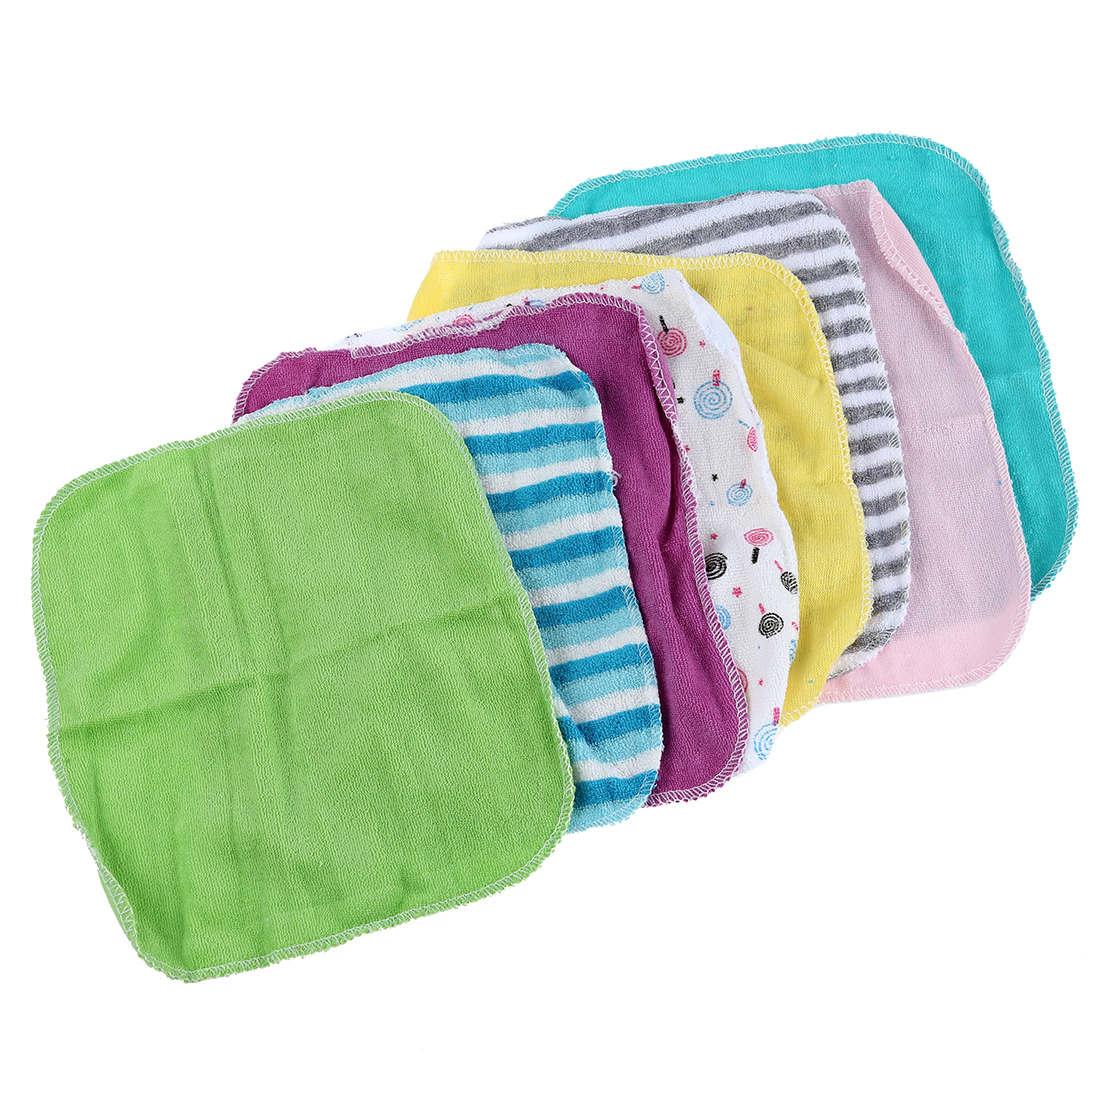 THZY Baby Face Washers Hand Towels Cotton Wipe Wash Cloth 8pcs/Pack